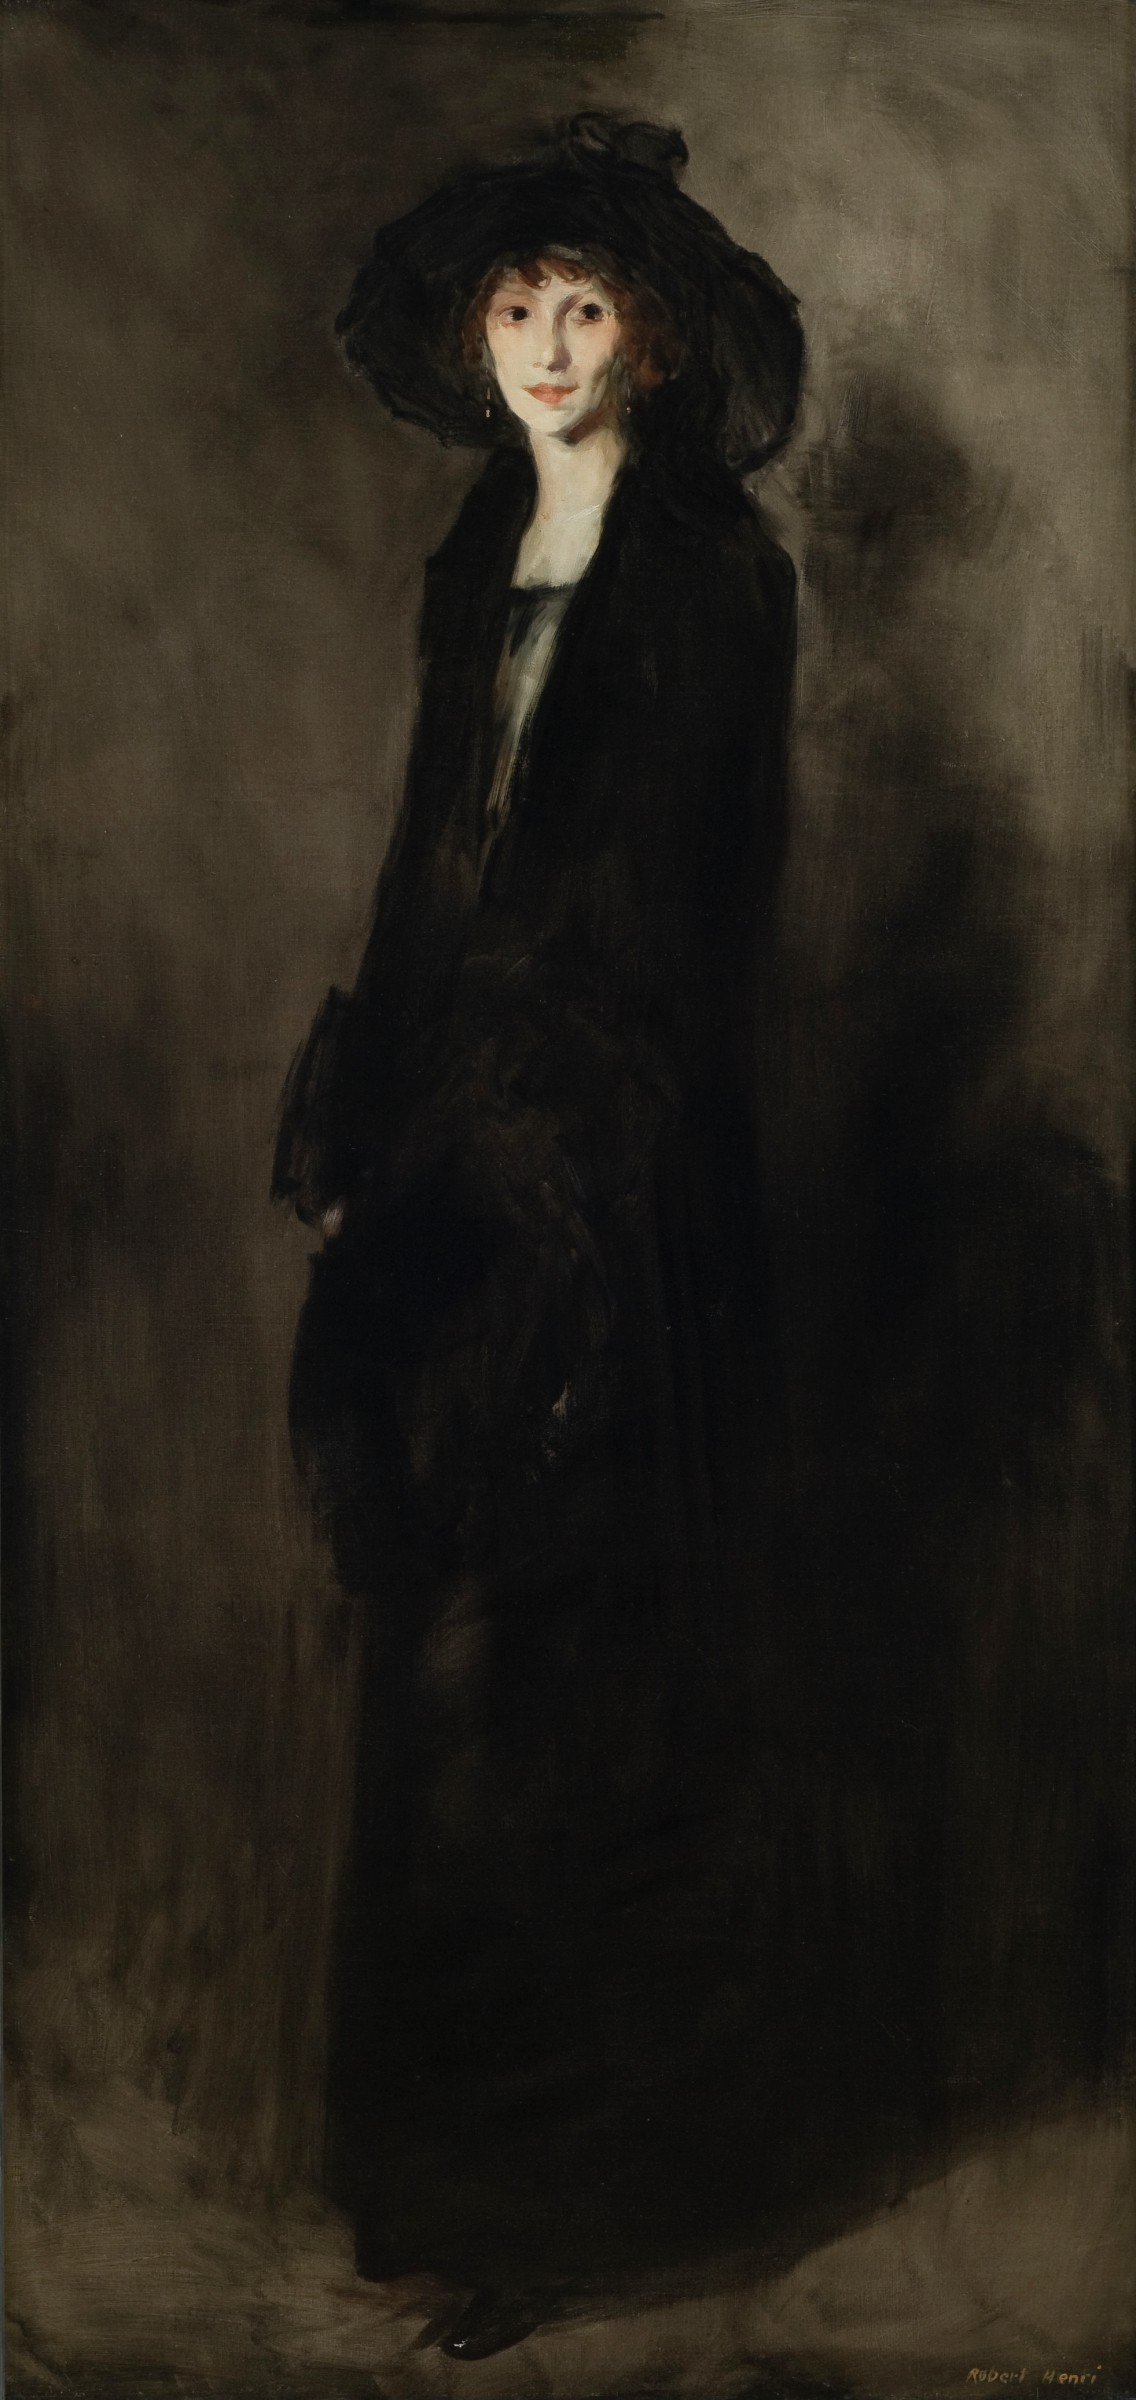 Vertical painted portrait of a slender woman in all black, rendered with creamy brushstrokes.